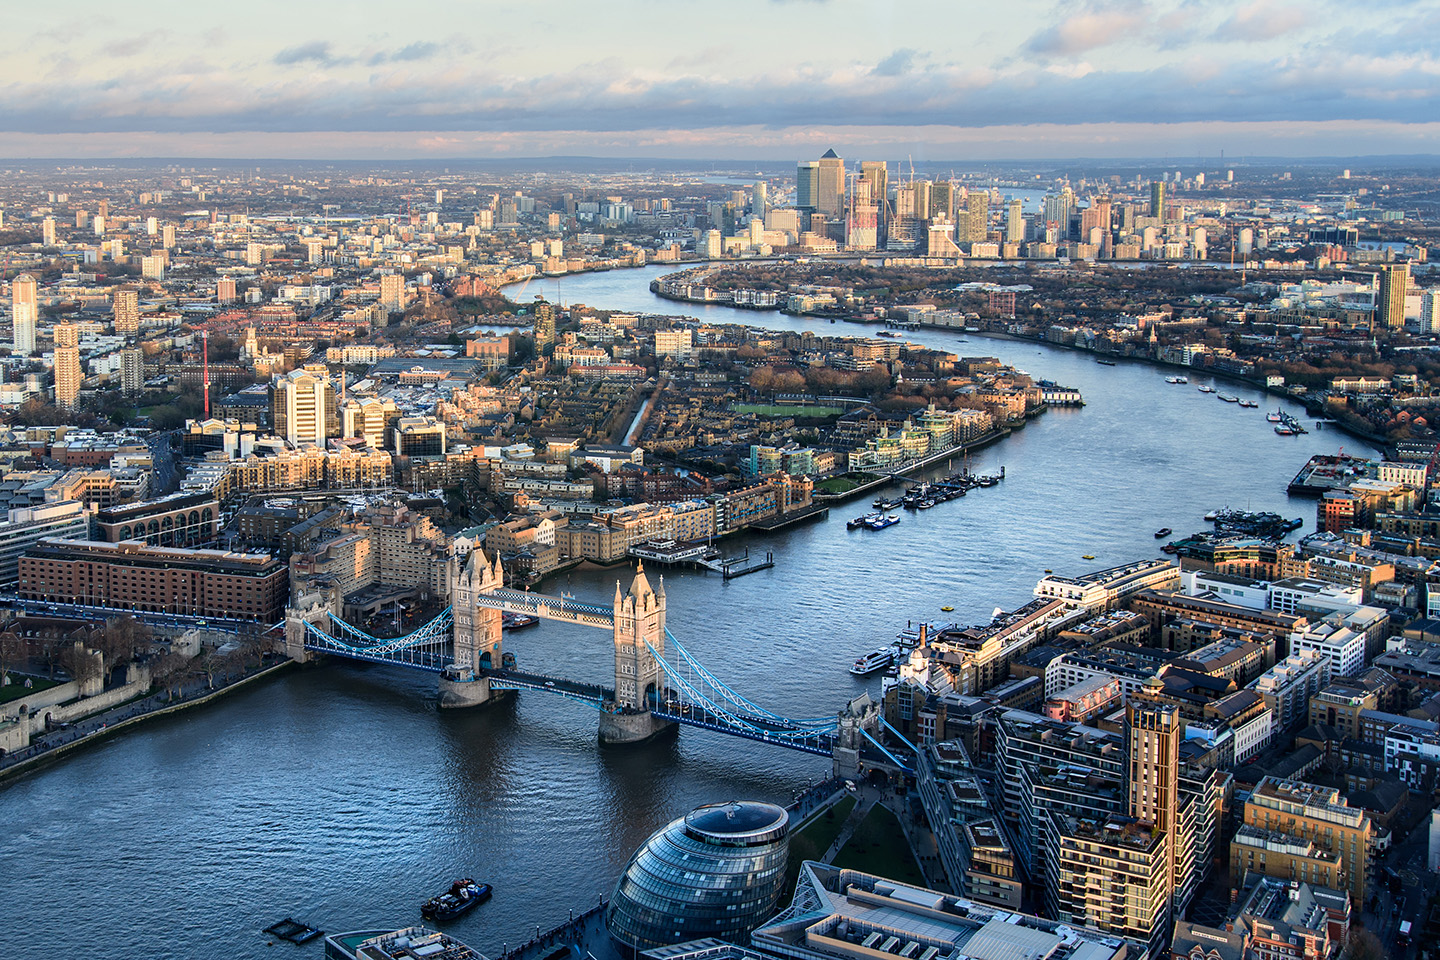 An aerial view of the River Thames in London, with Tower Bridge in the foreground and Canary Wharf in the distance